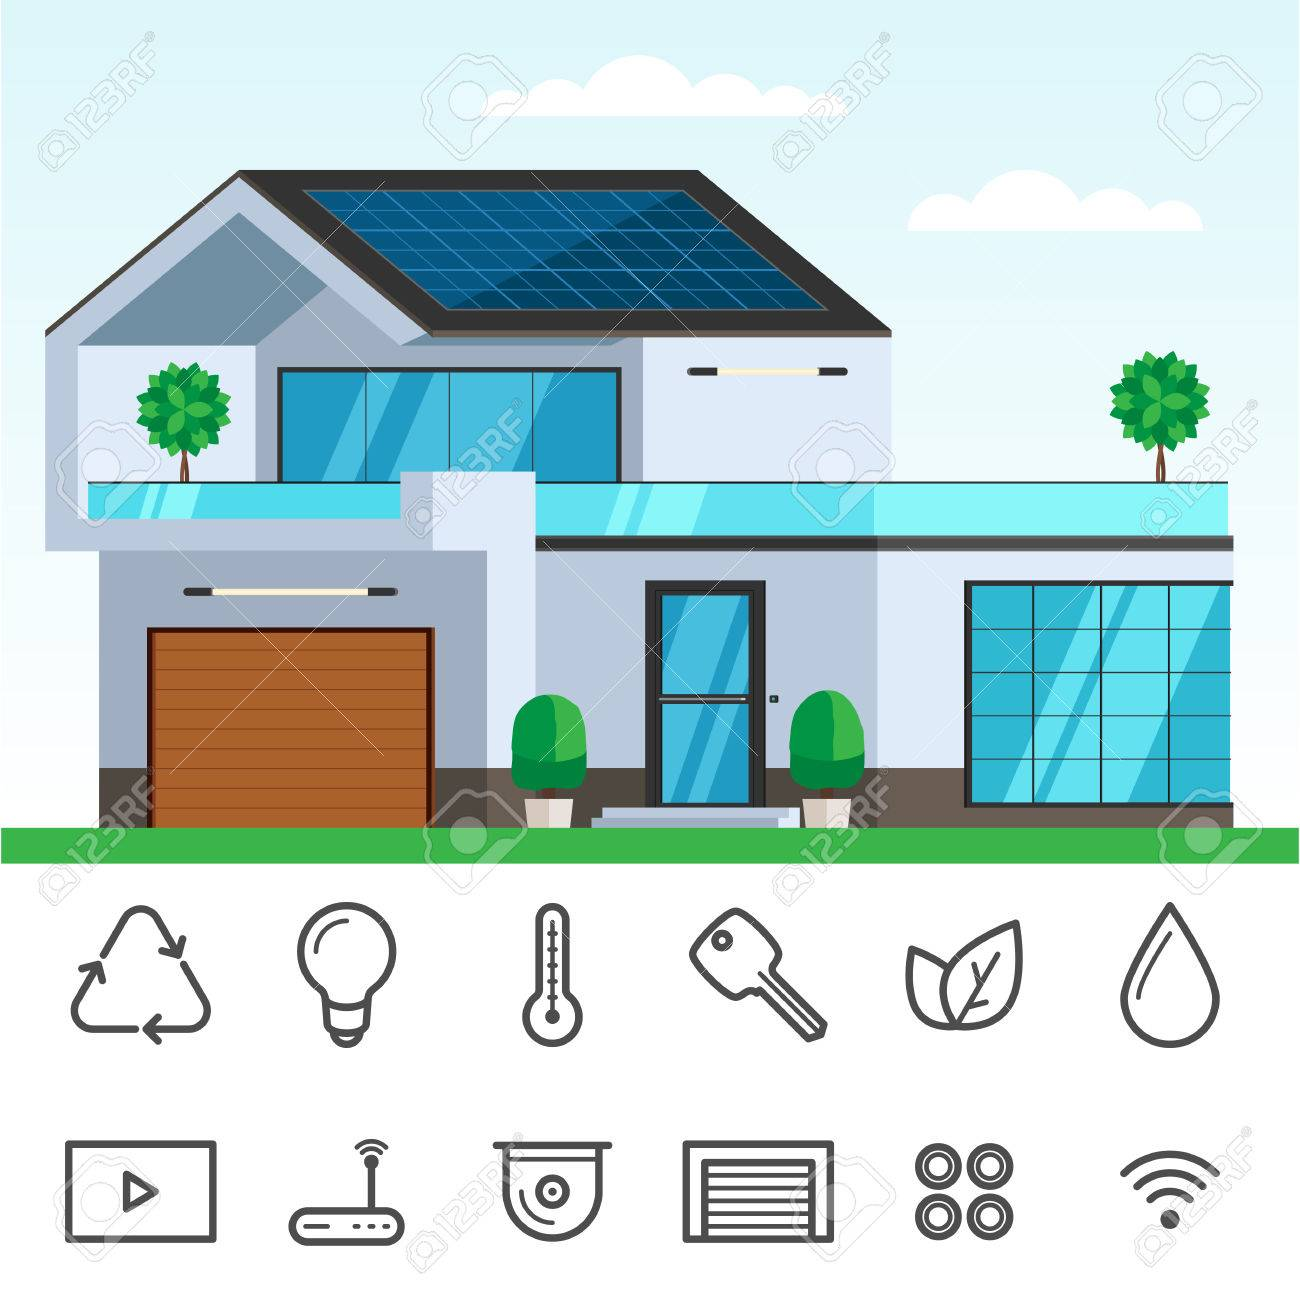 Smart House With Solar Panel On The Roof. Concept Of Ecology House,  Technology Icon